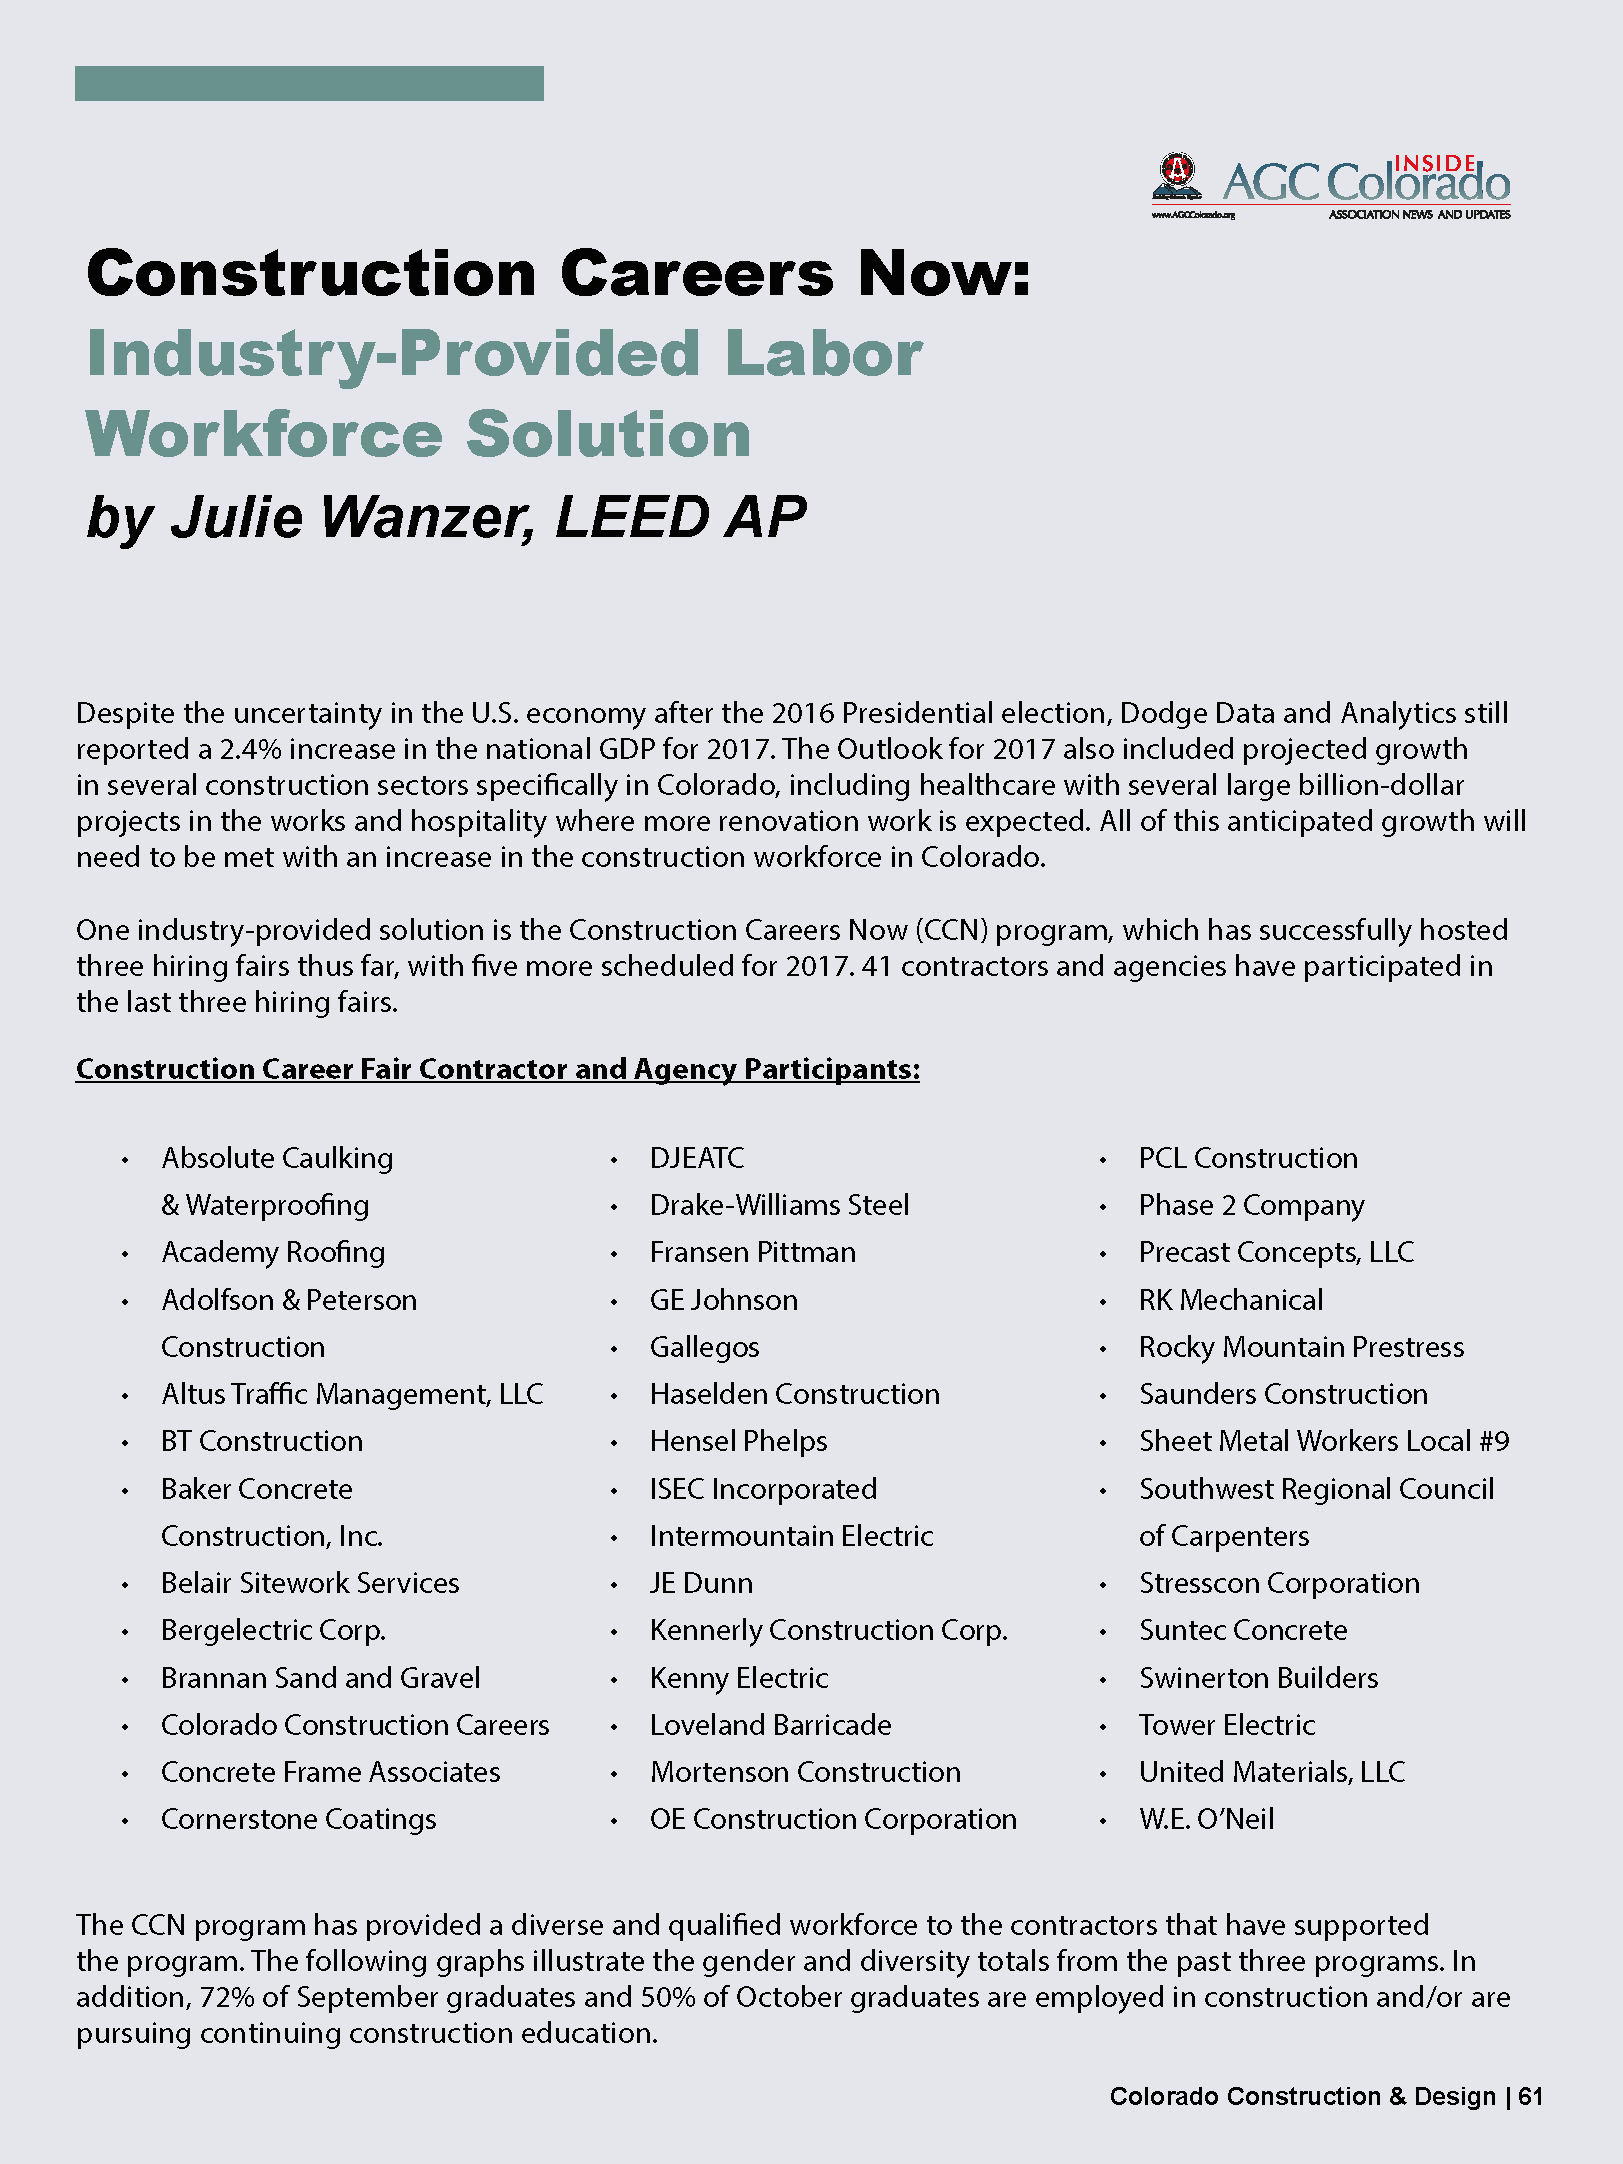 CCD Magazine Winter 2017_Industry-Provided Labor Workforce ...